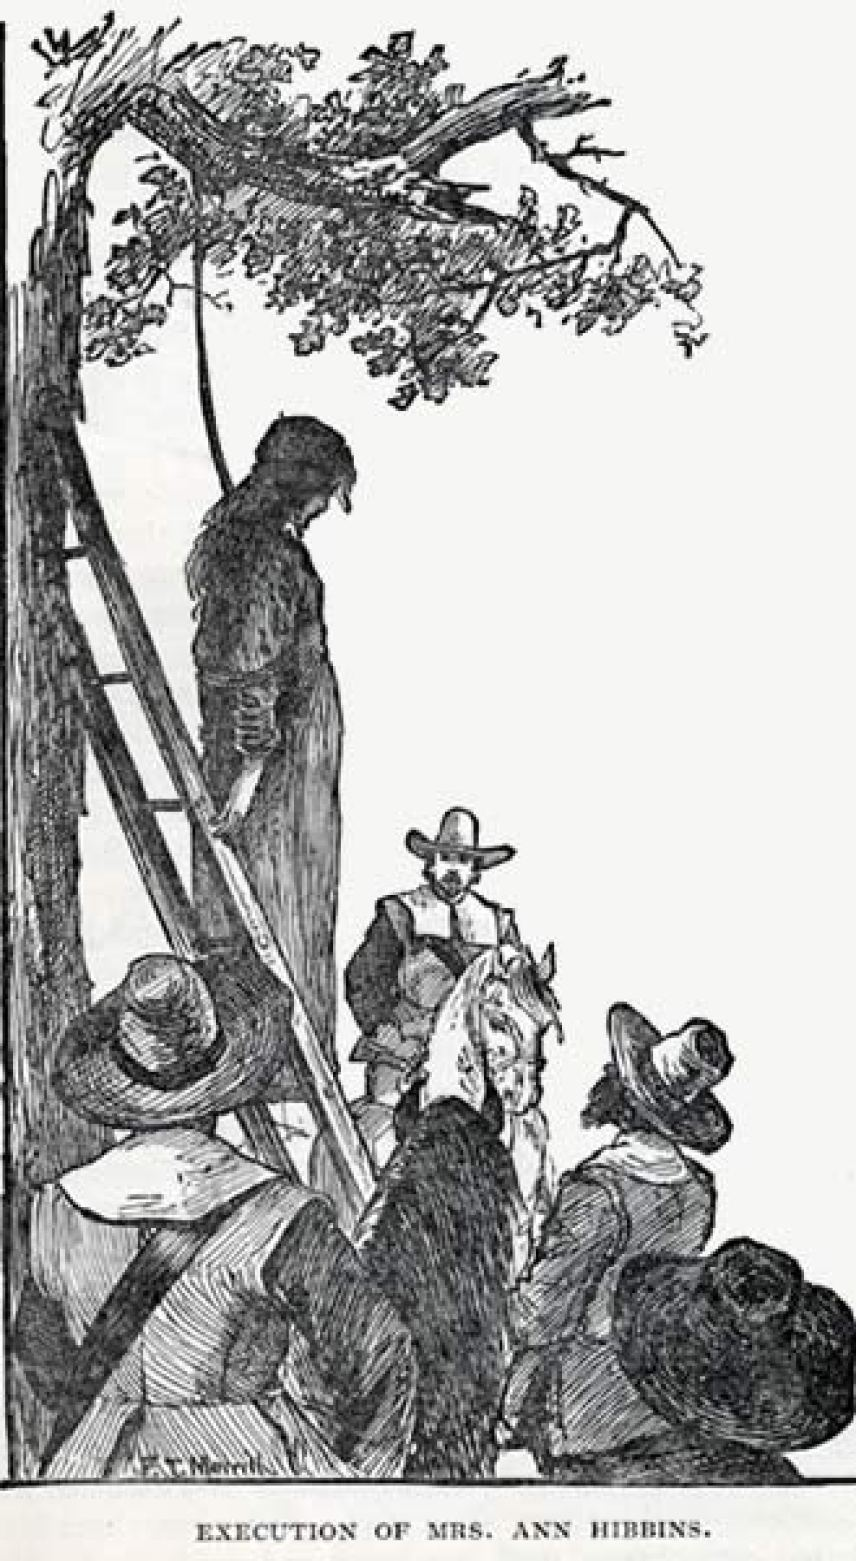 """""""Execution of Mrs. Ann Hibbins"""" - Often used as an illustration of the Salem witch trails, this image depicts the execution of Ann Hibbins on Boston Common in 1657."""